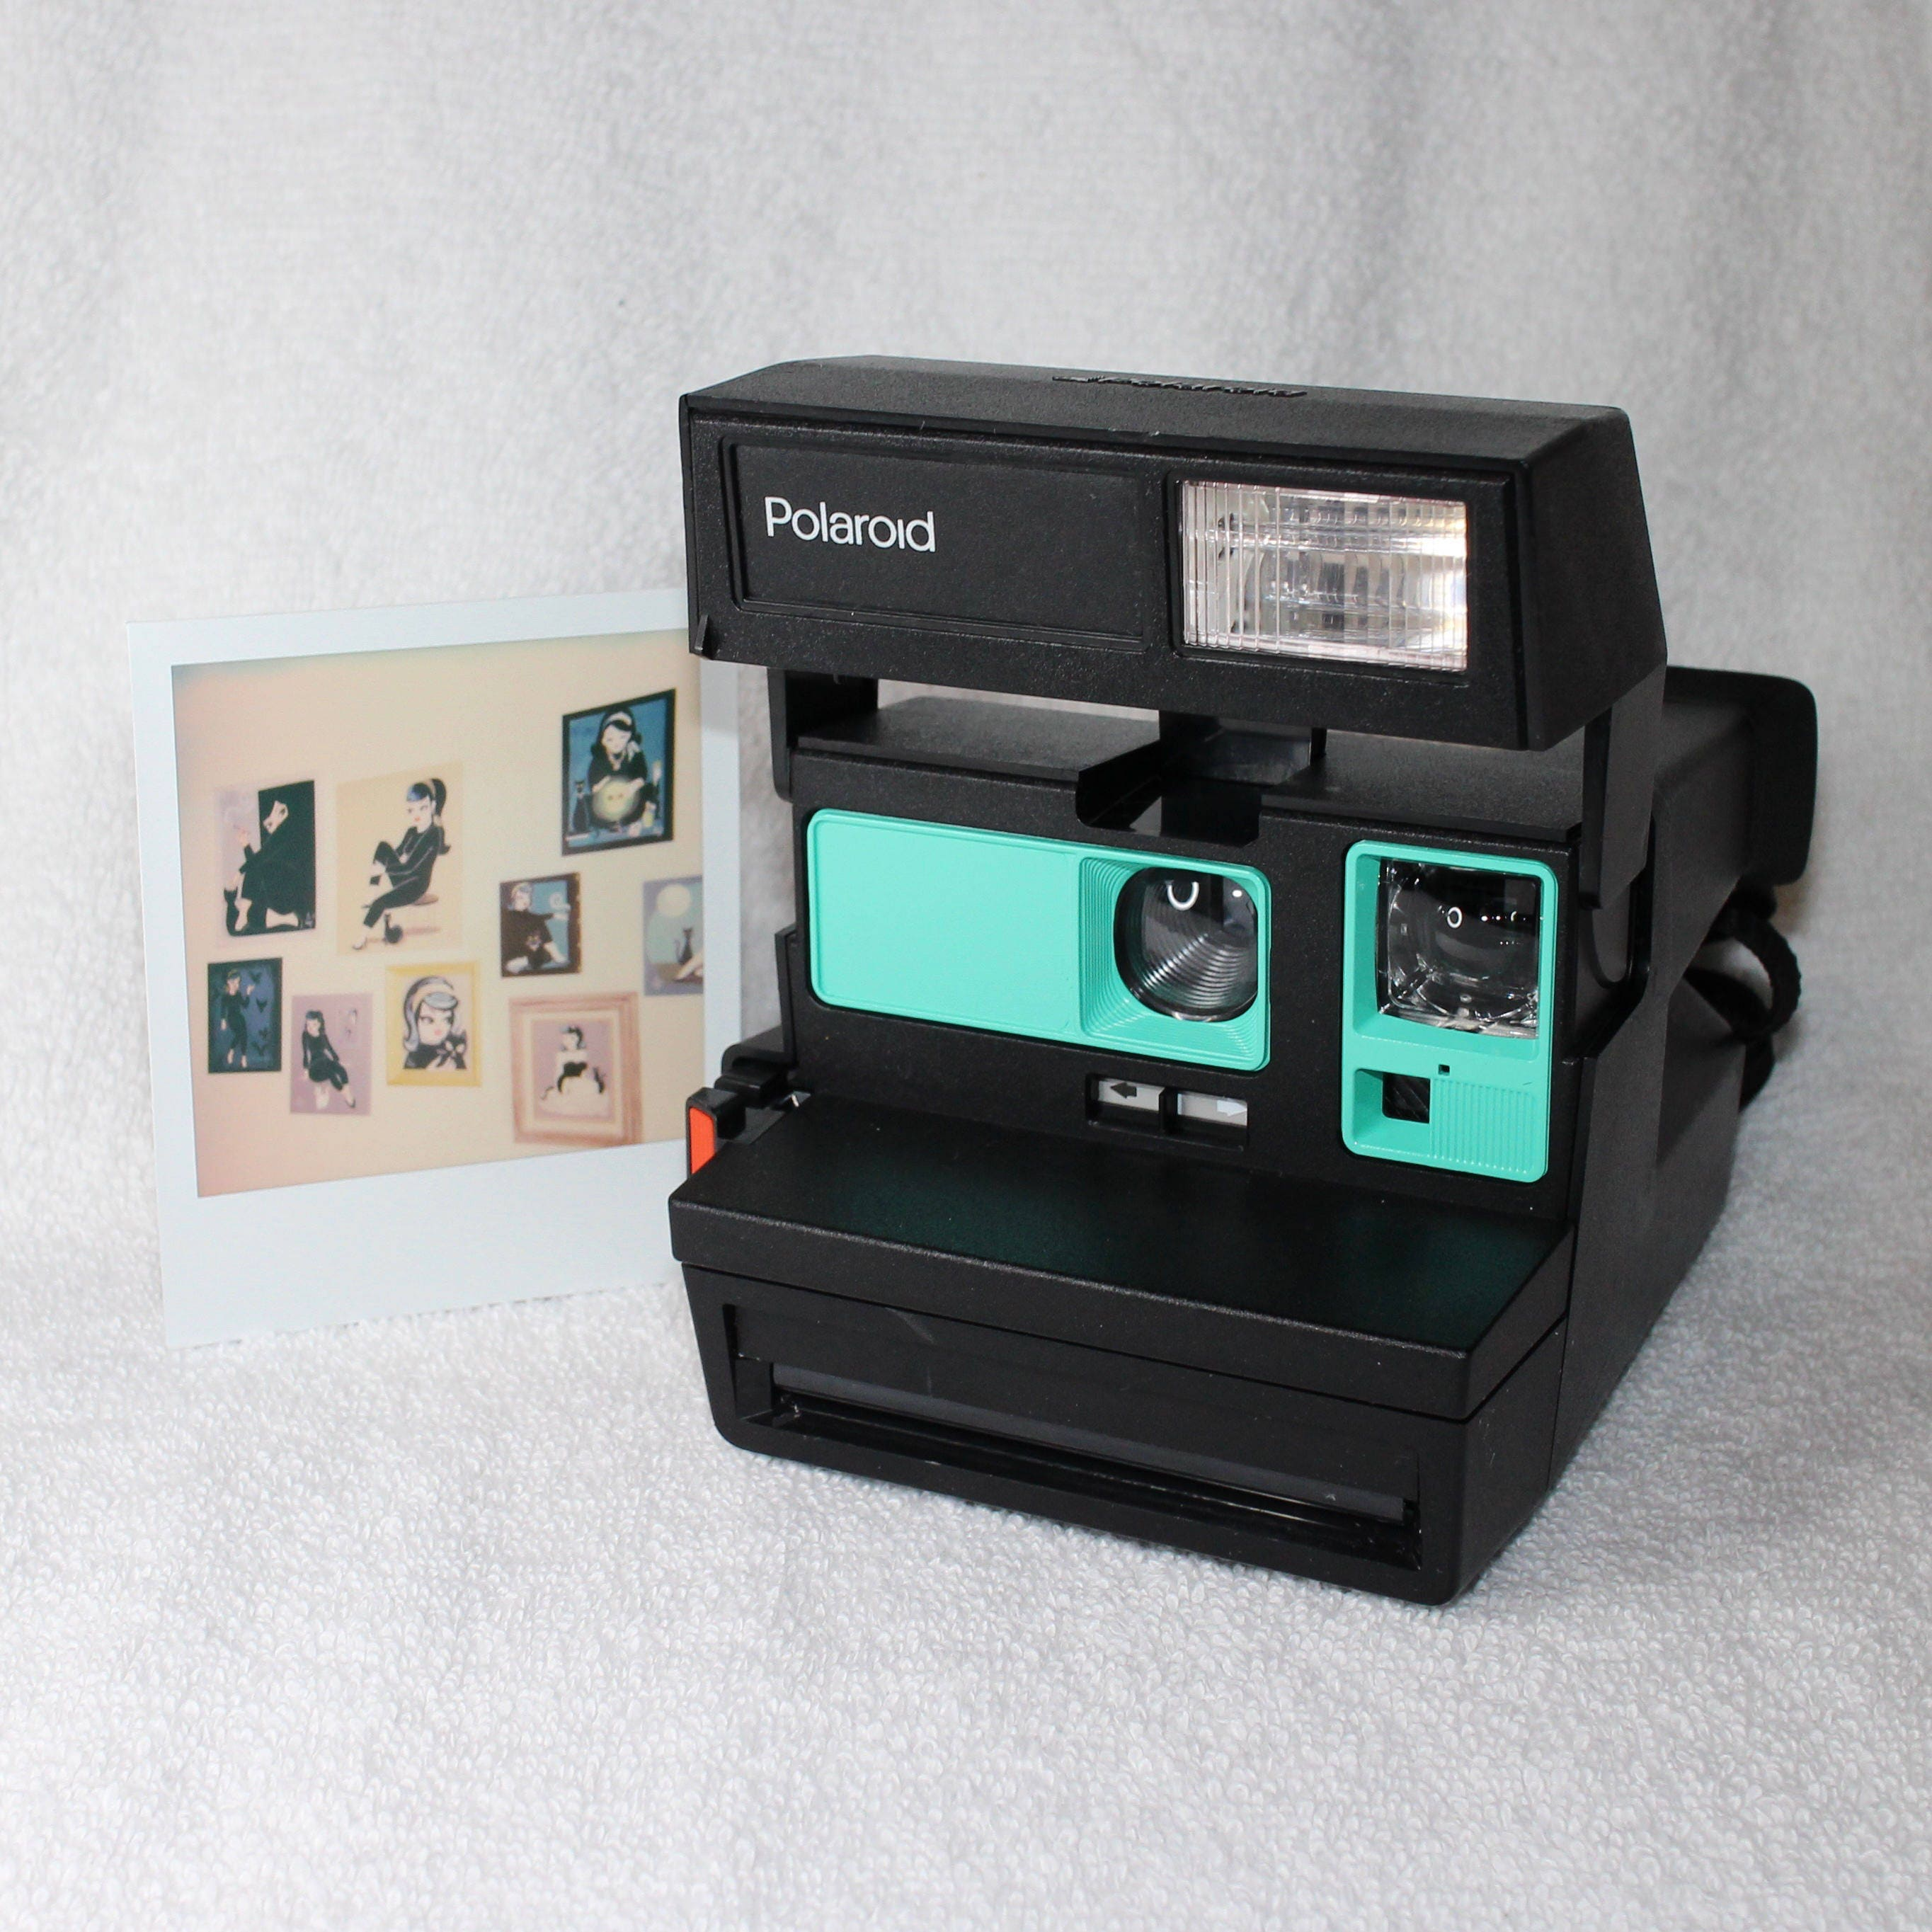 upcycled polaroid sun 600 with retro green cleaned and tested. Black Bedroom Furniture Sets. Home Design Ideas